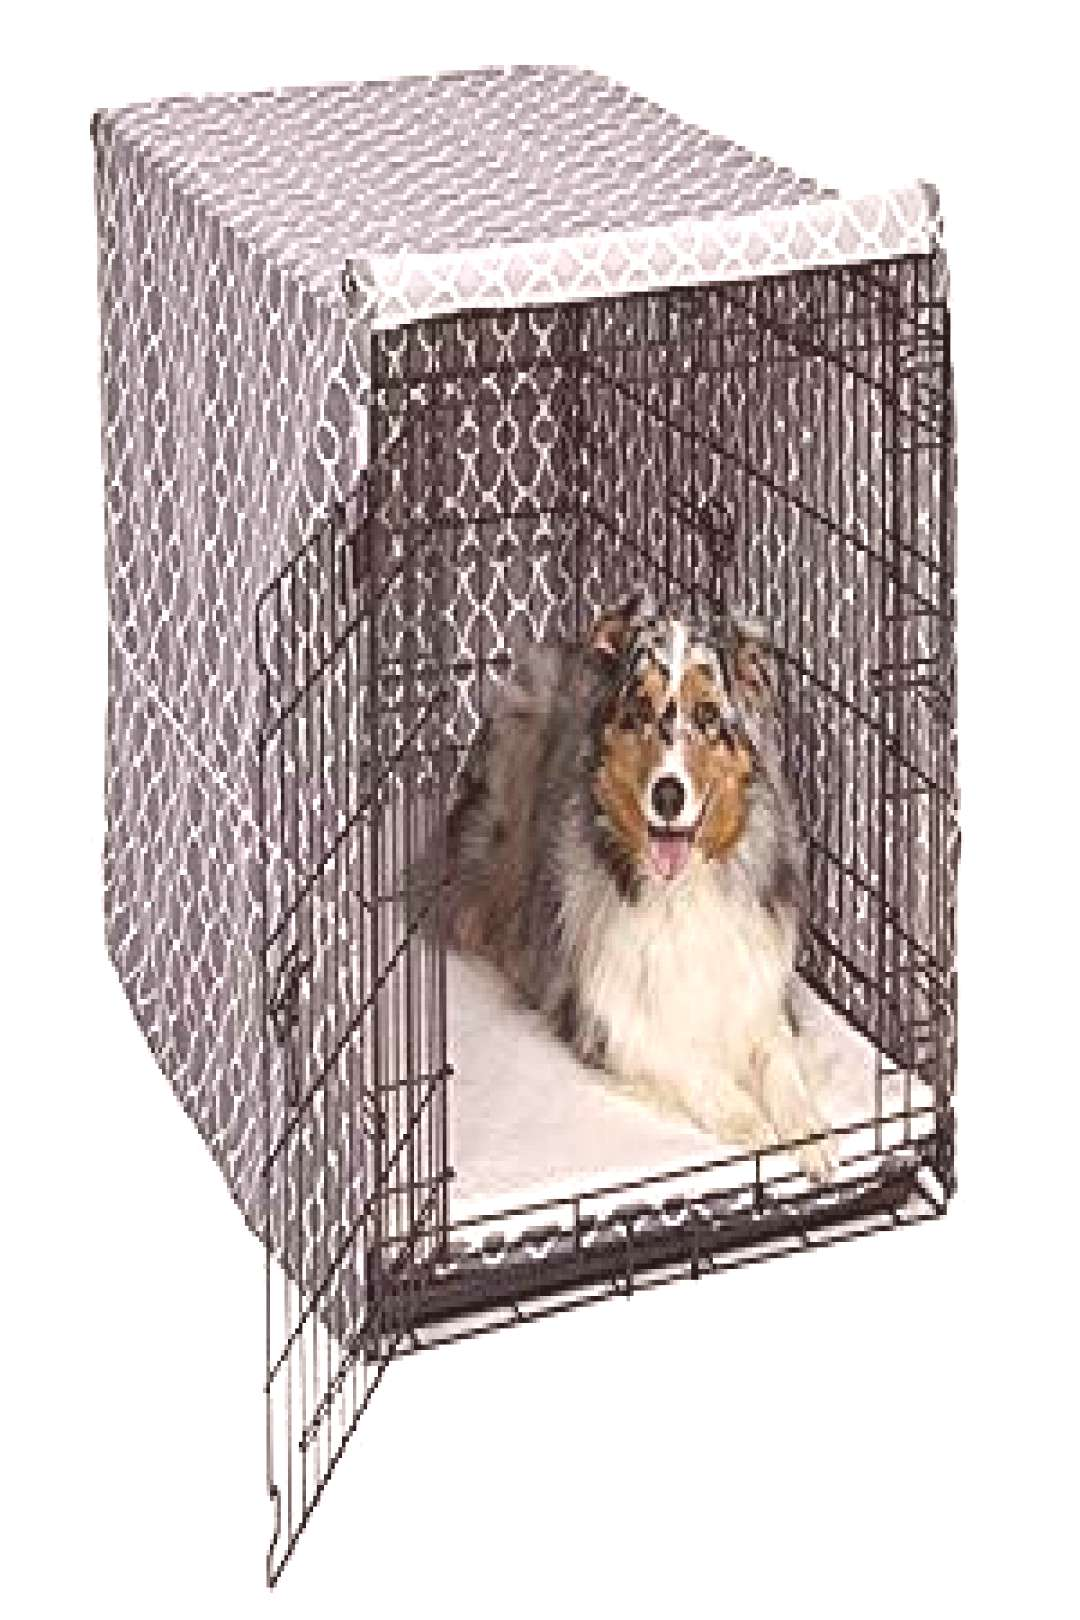 MidWest Dog Crate Cover, Privacy Dog Crate Cover Fits MidWest Dog Crates, Machine Wash amp Dry cool 6